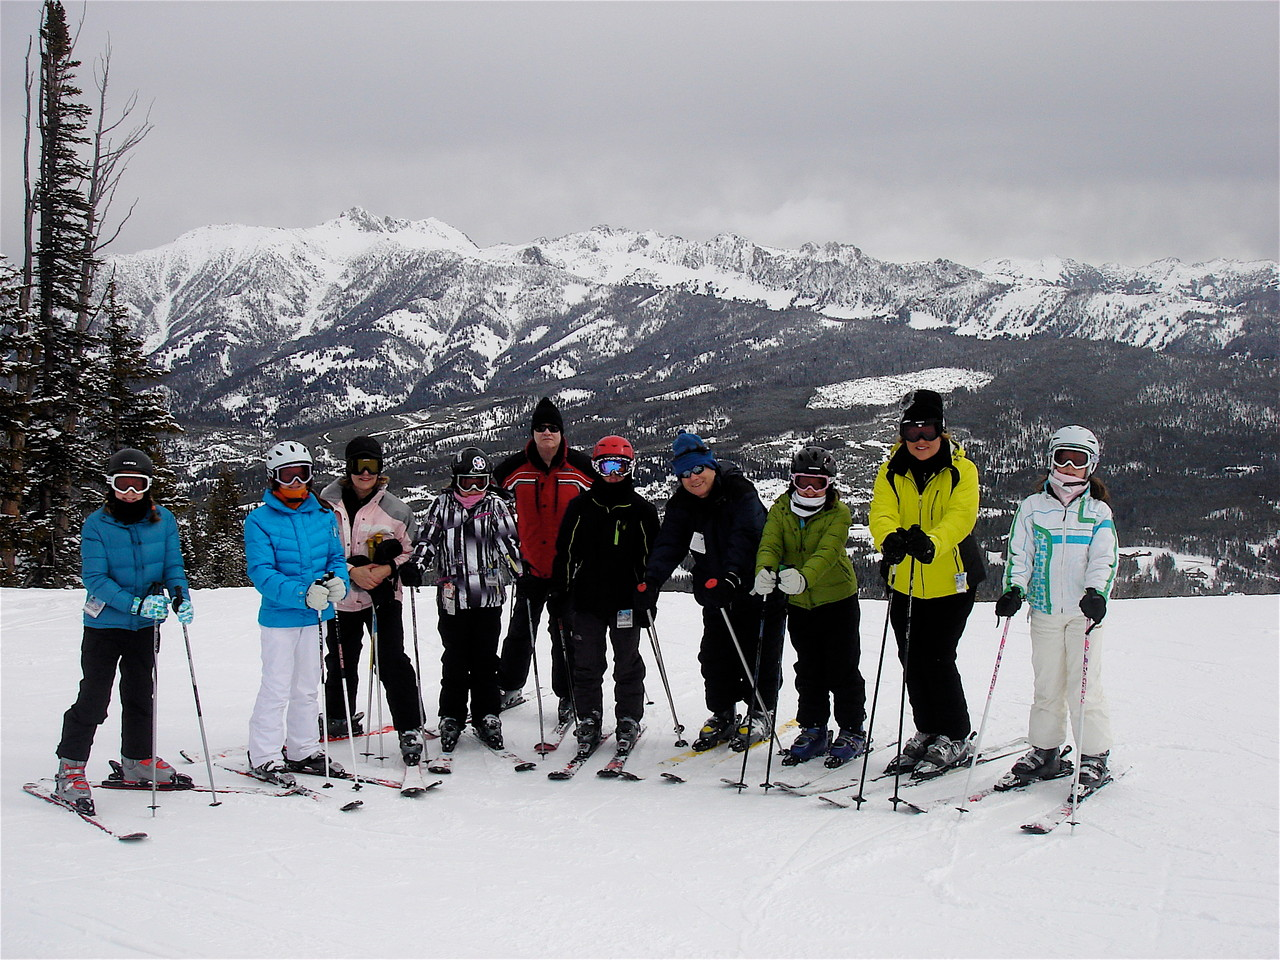 2011 Skiiers at Big Sky, Montana